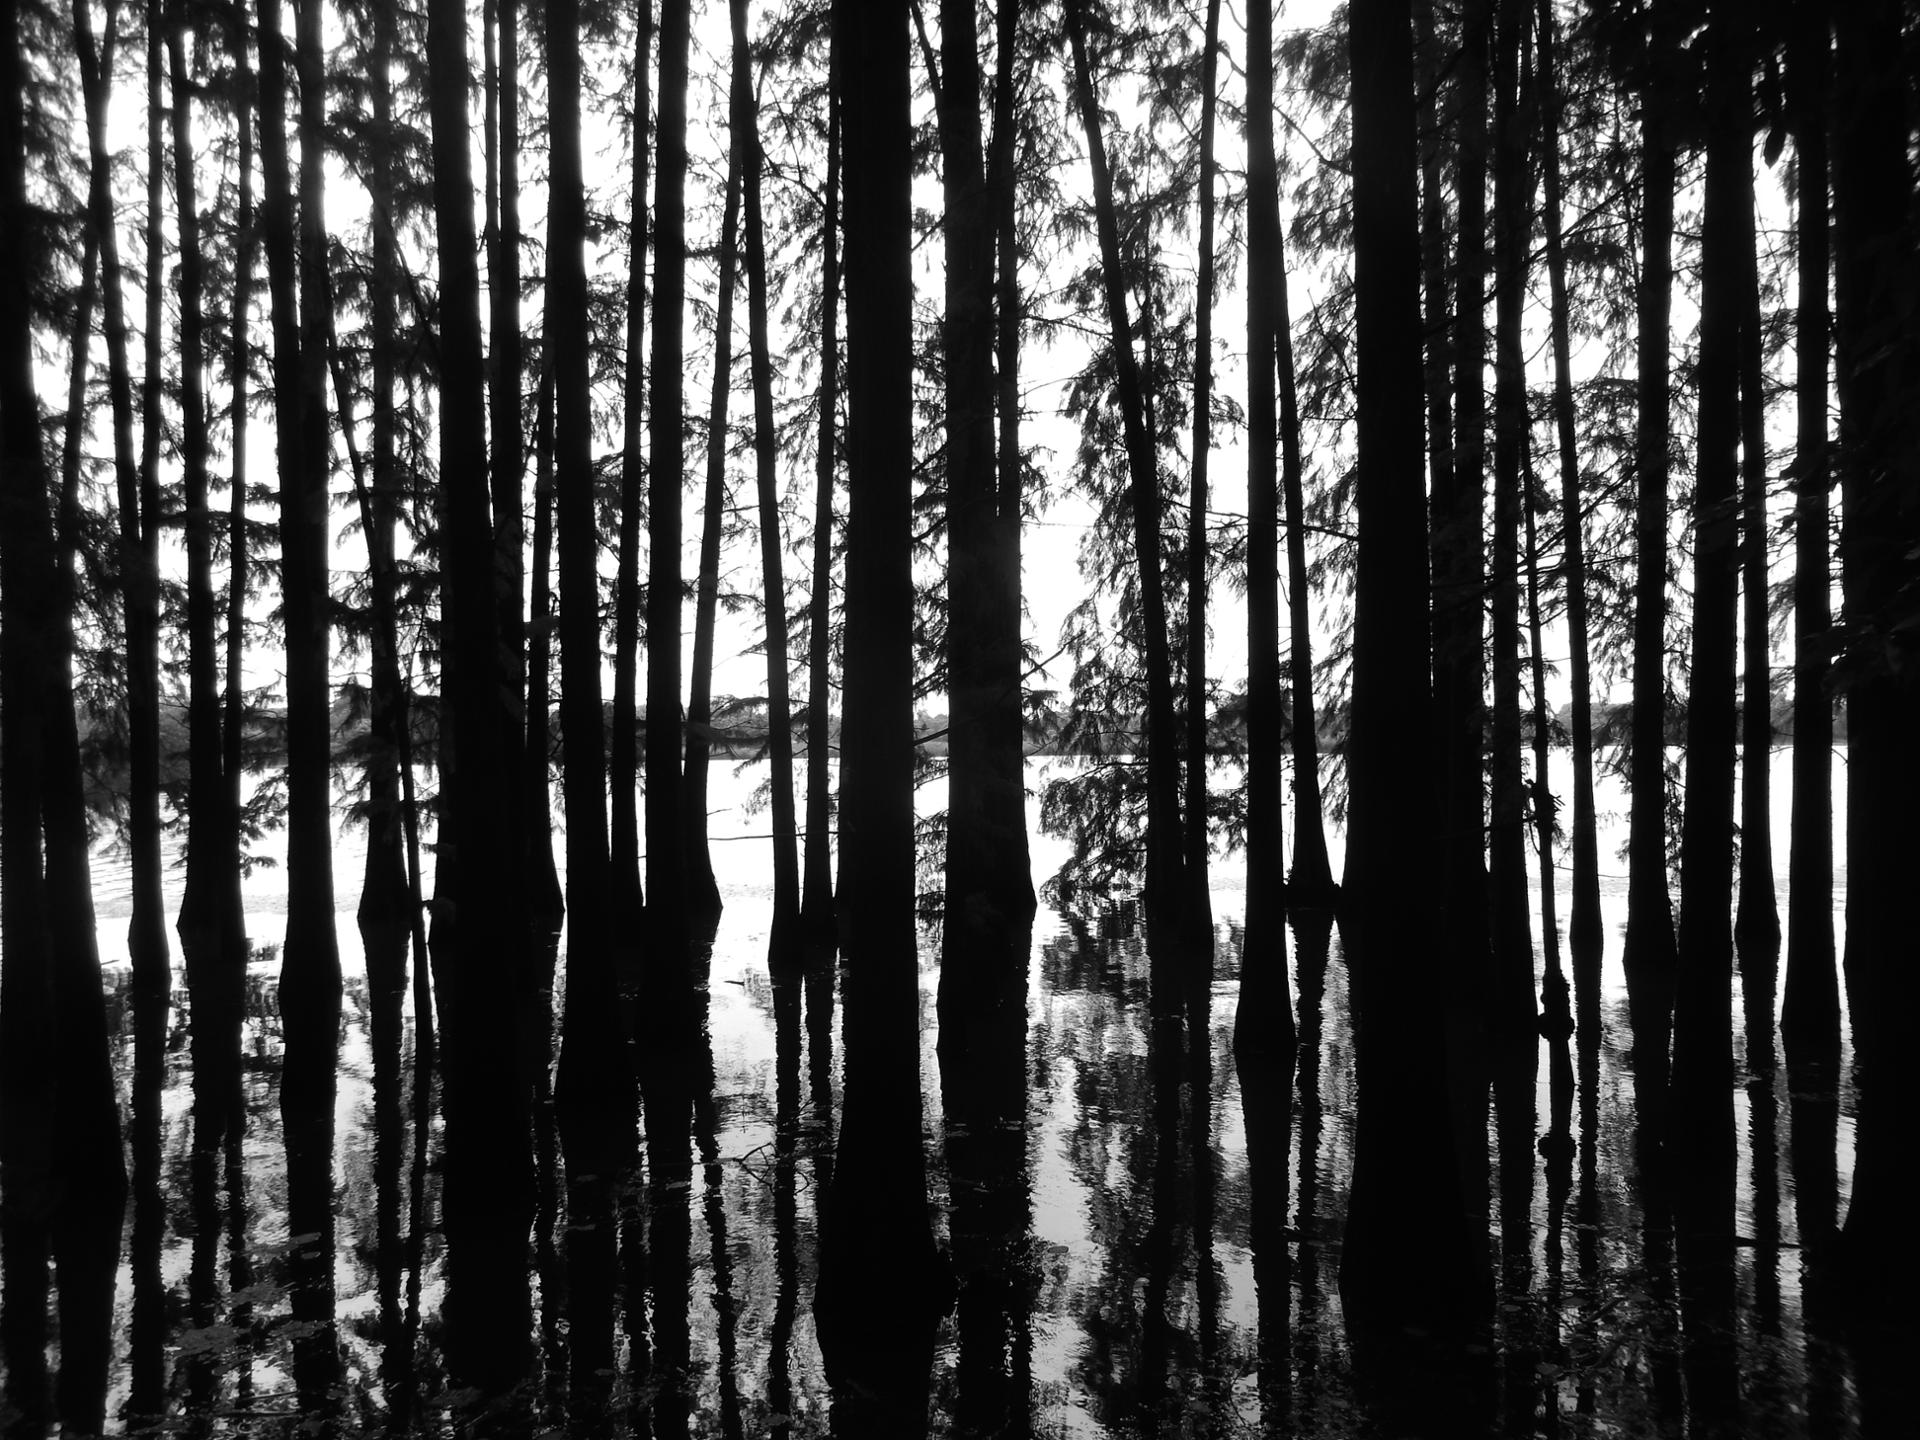 trees reflects